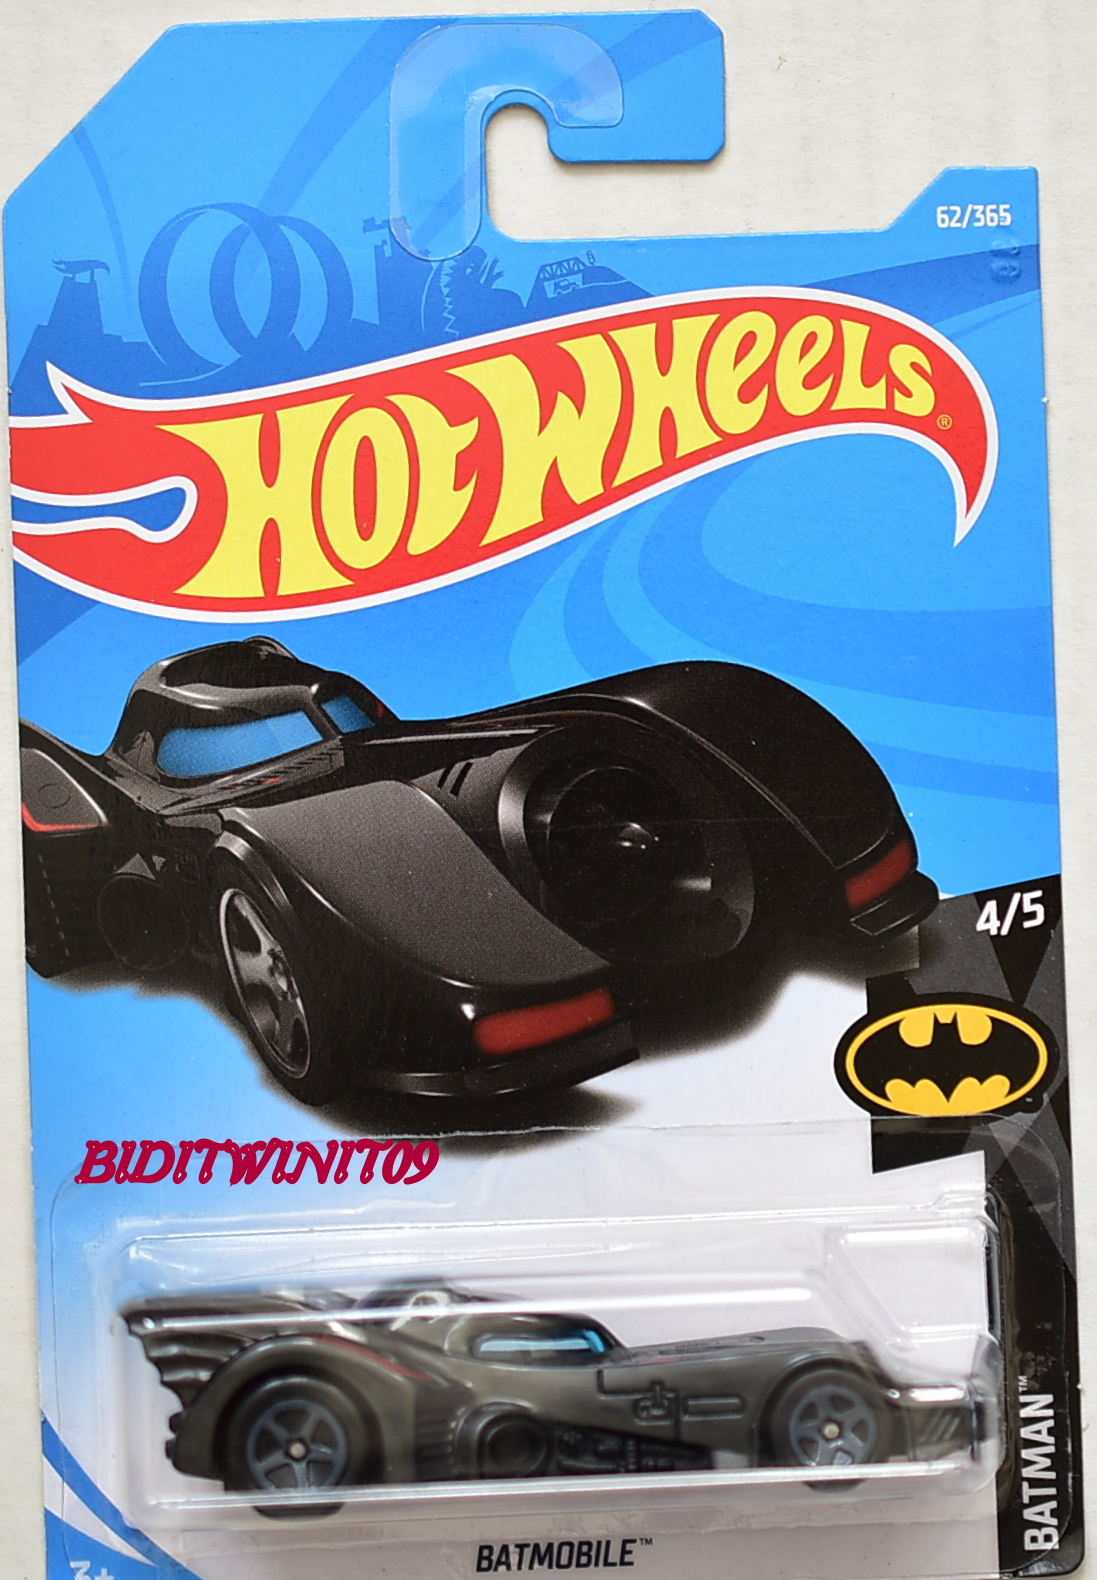 HOT WHEELS 2018 BATMAN BATMOBILE #4/5